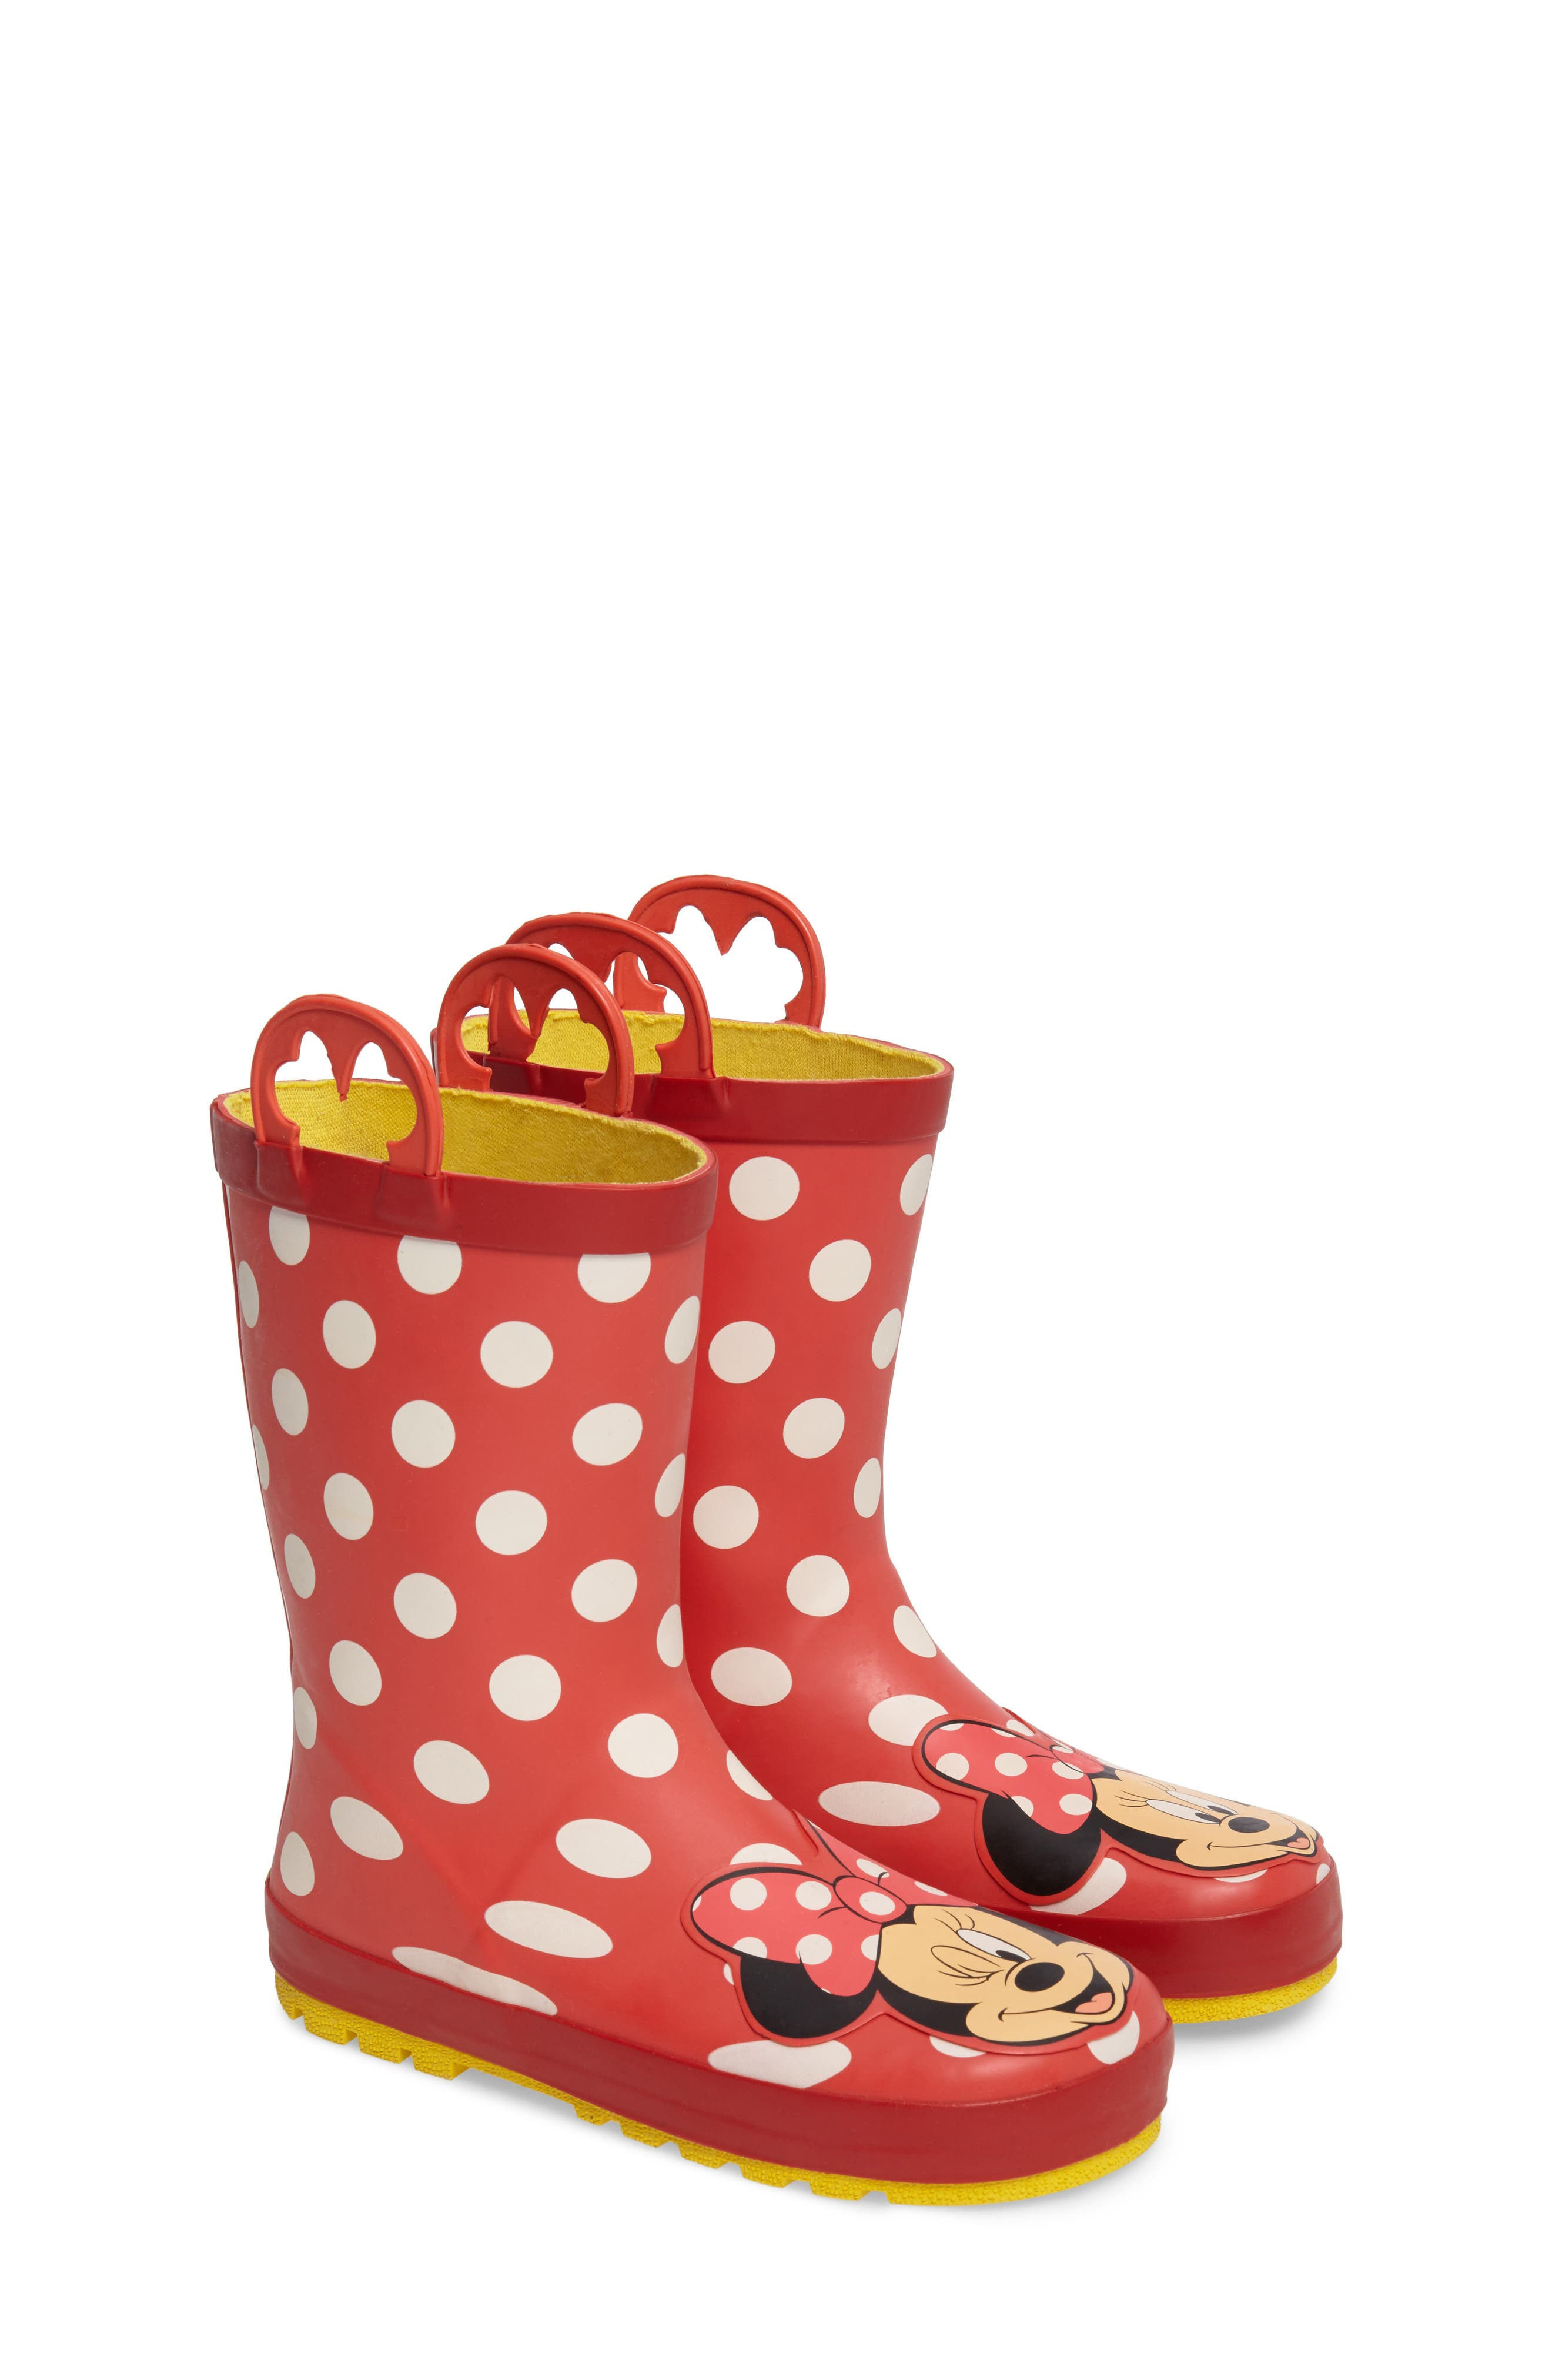 WESTERN CHIEF Minnie Mouse Rain Boot, Main, color, RED